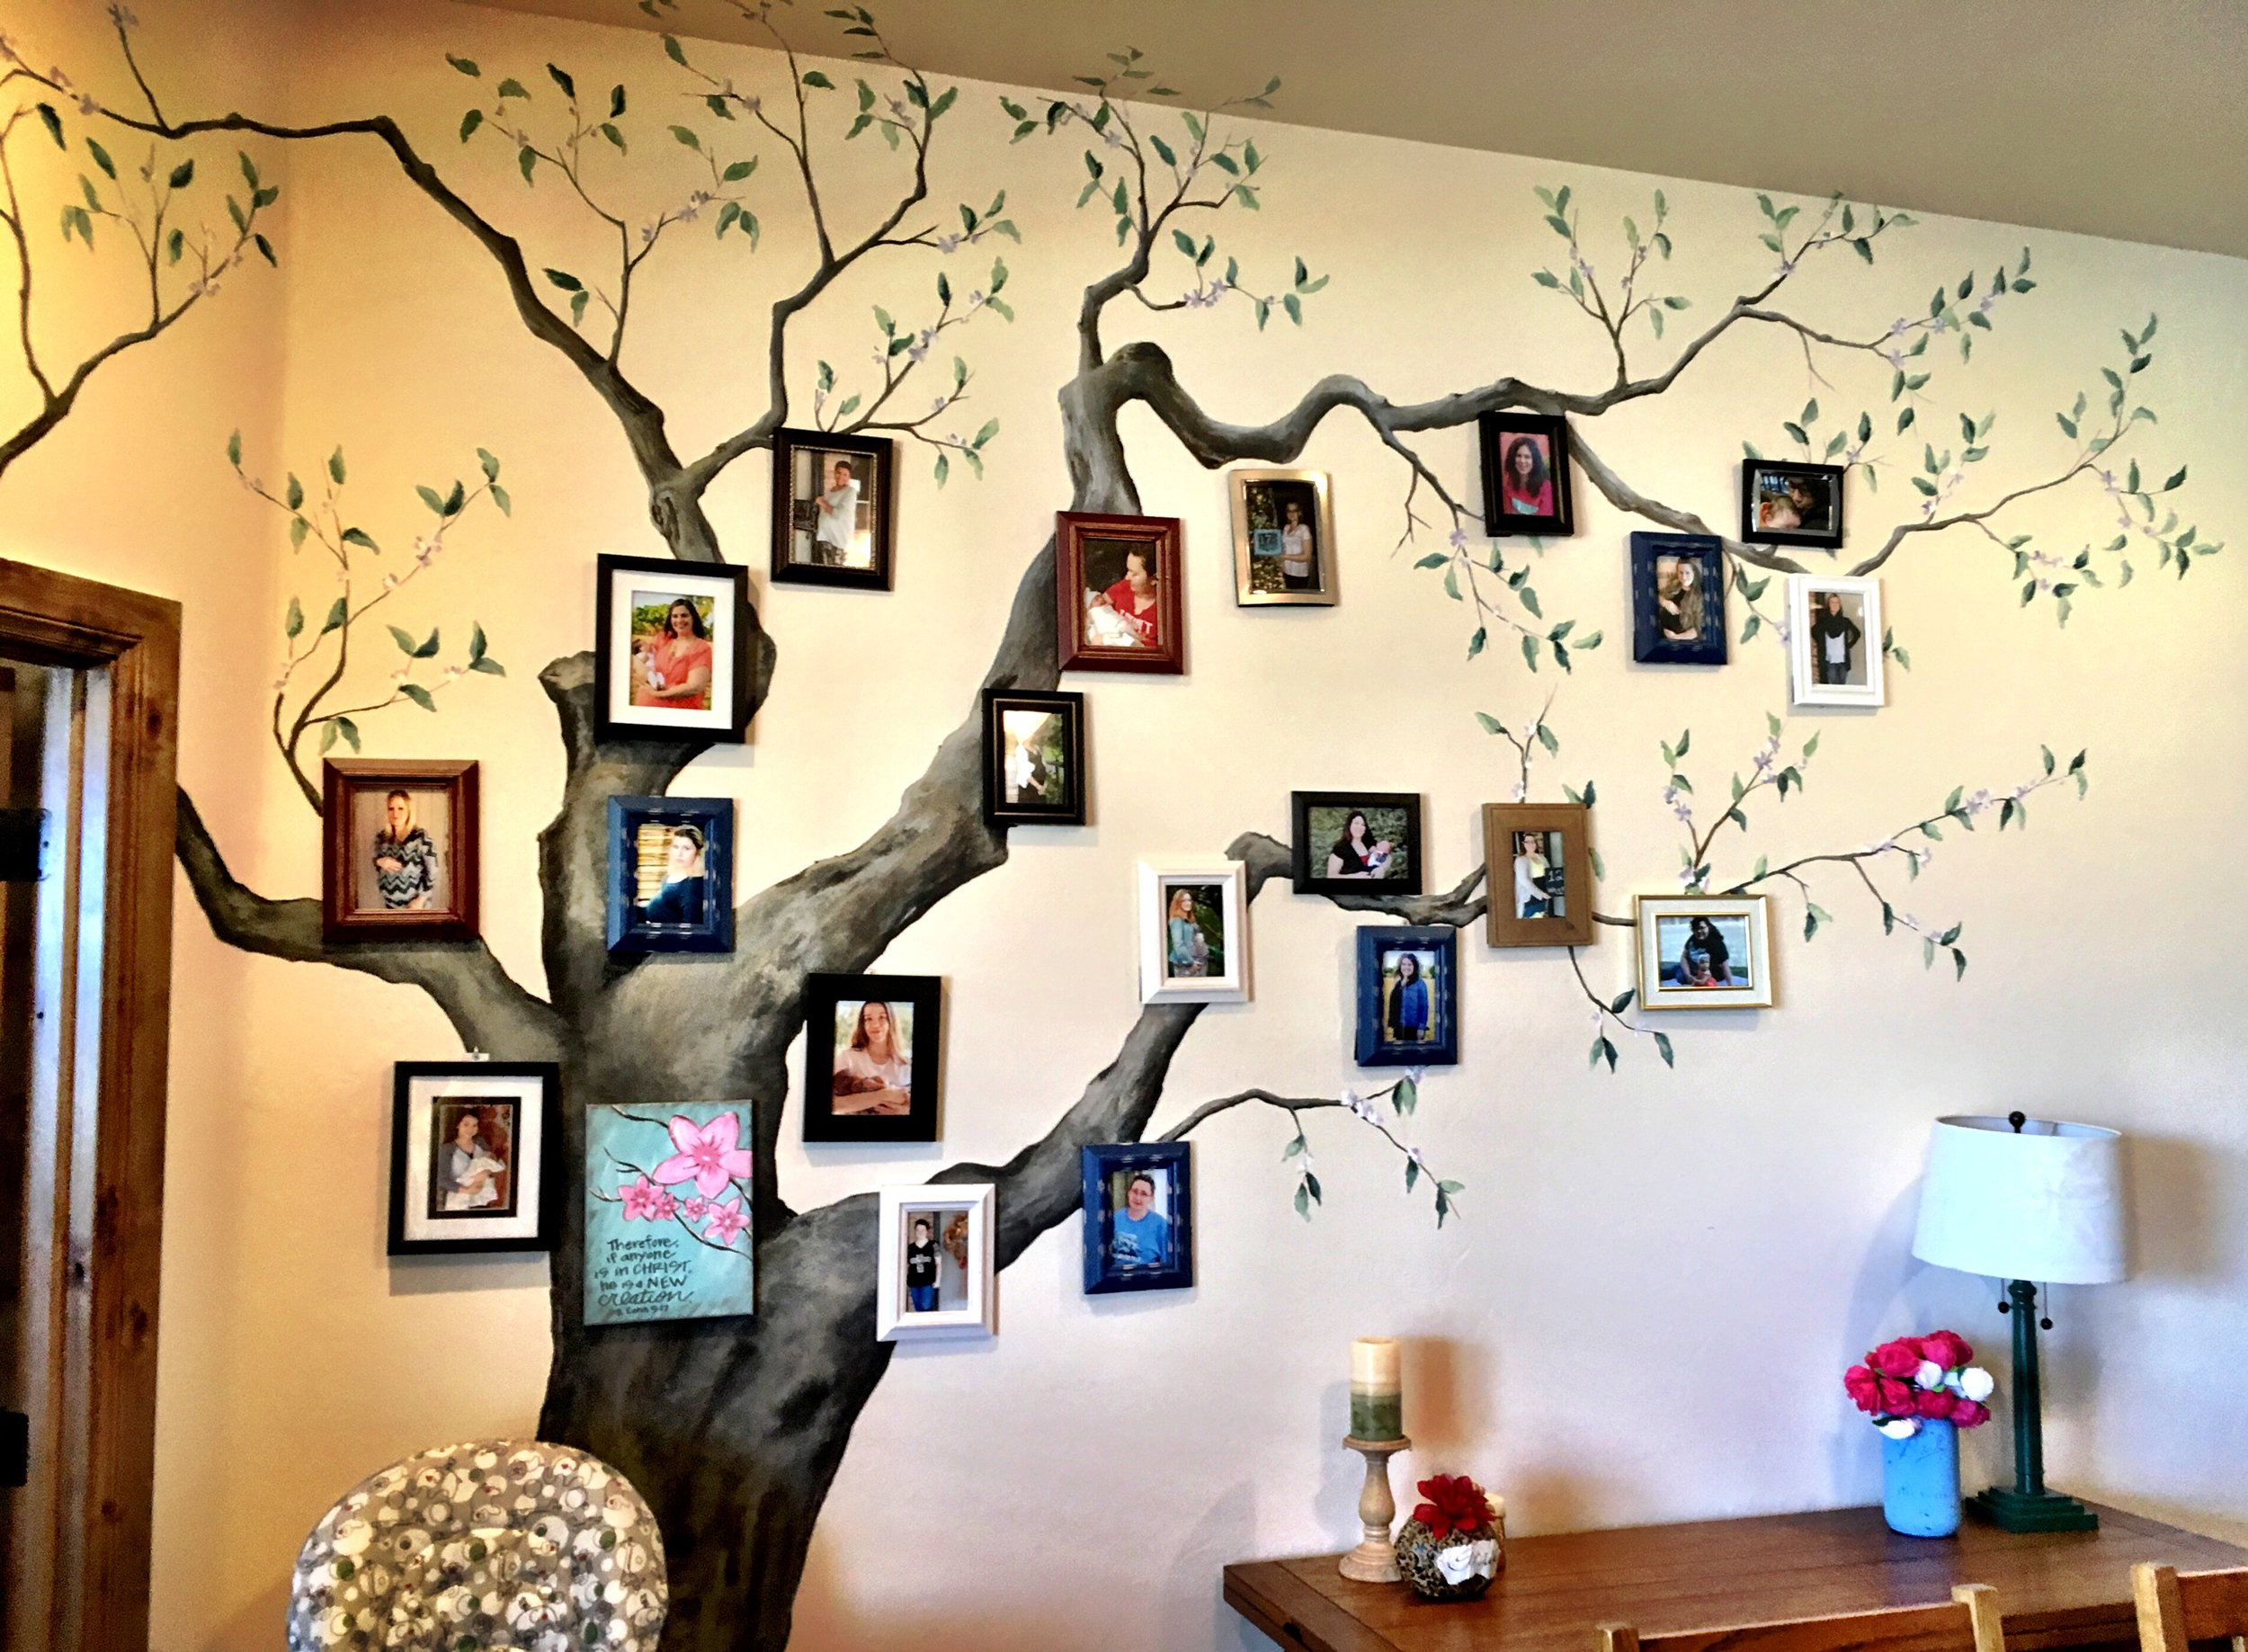 Our Tree of Life that tells the story of lives that have been changed.